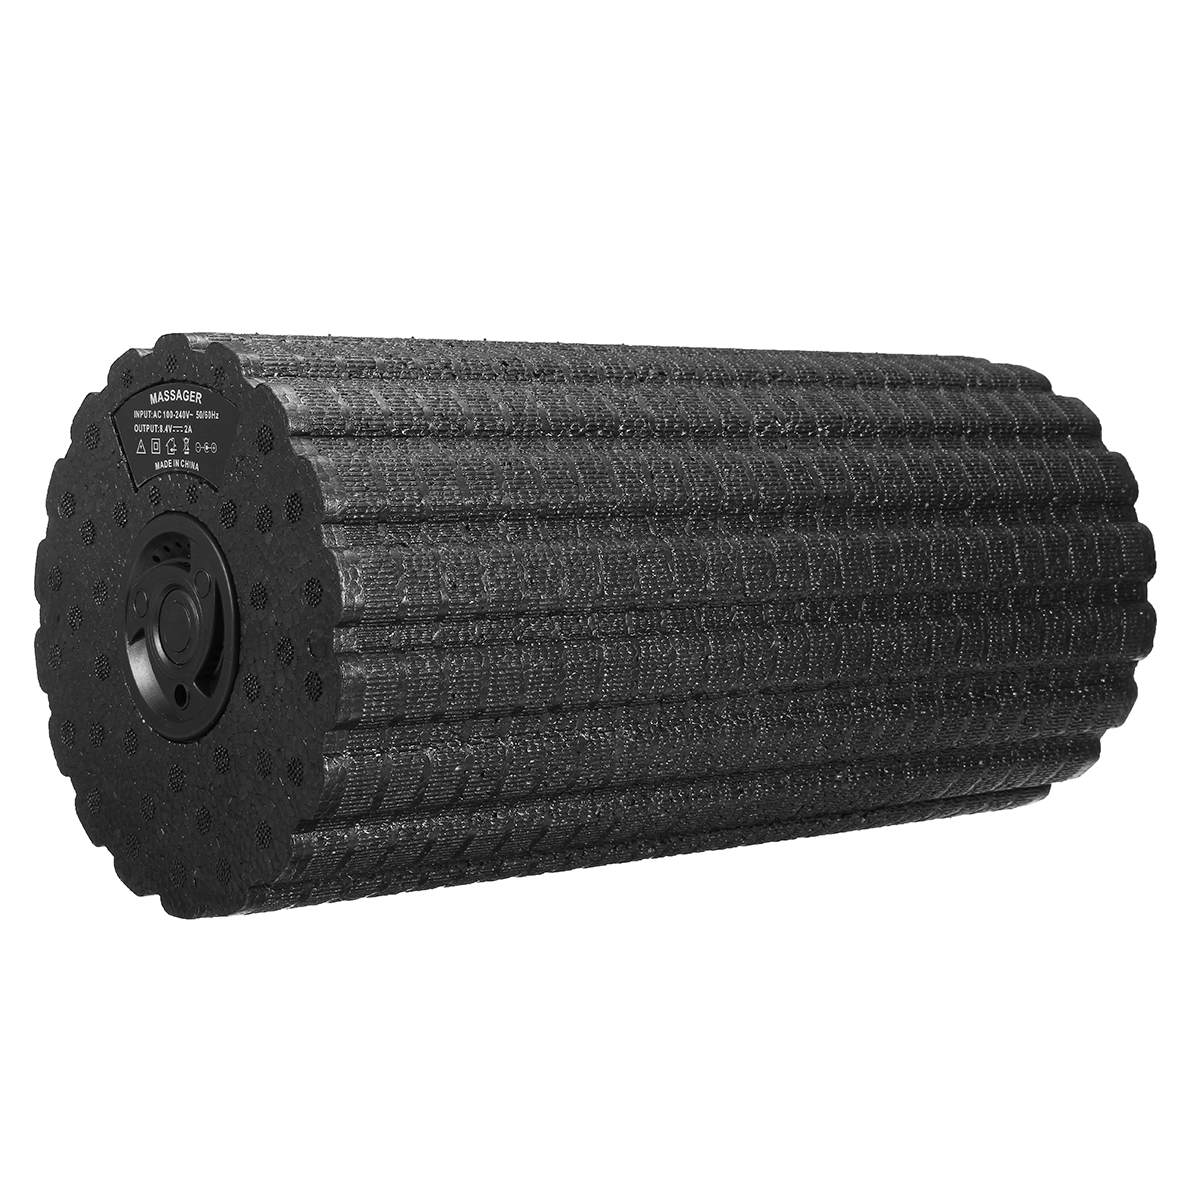 Foam Roller In Yoga Blocks 4 Gears Adjust Low Noise Fitness Gym Yoga Roller Pilates Electric Vibration Body Slimming Massager